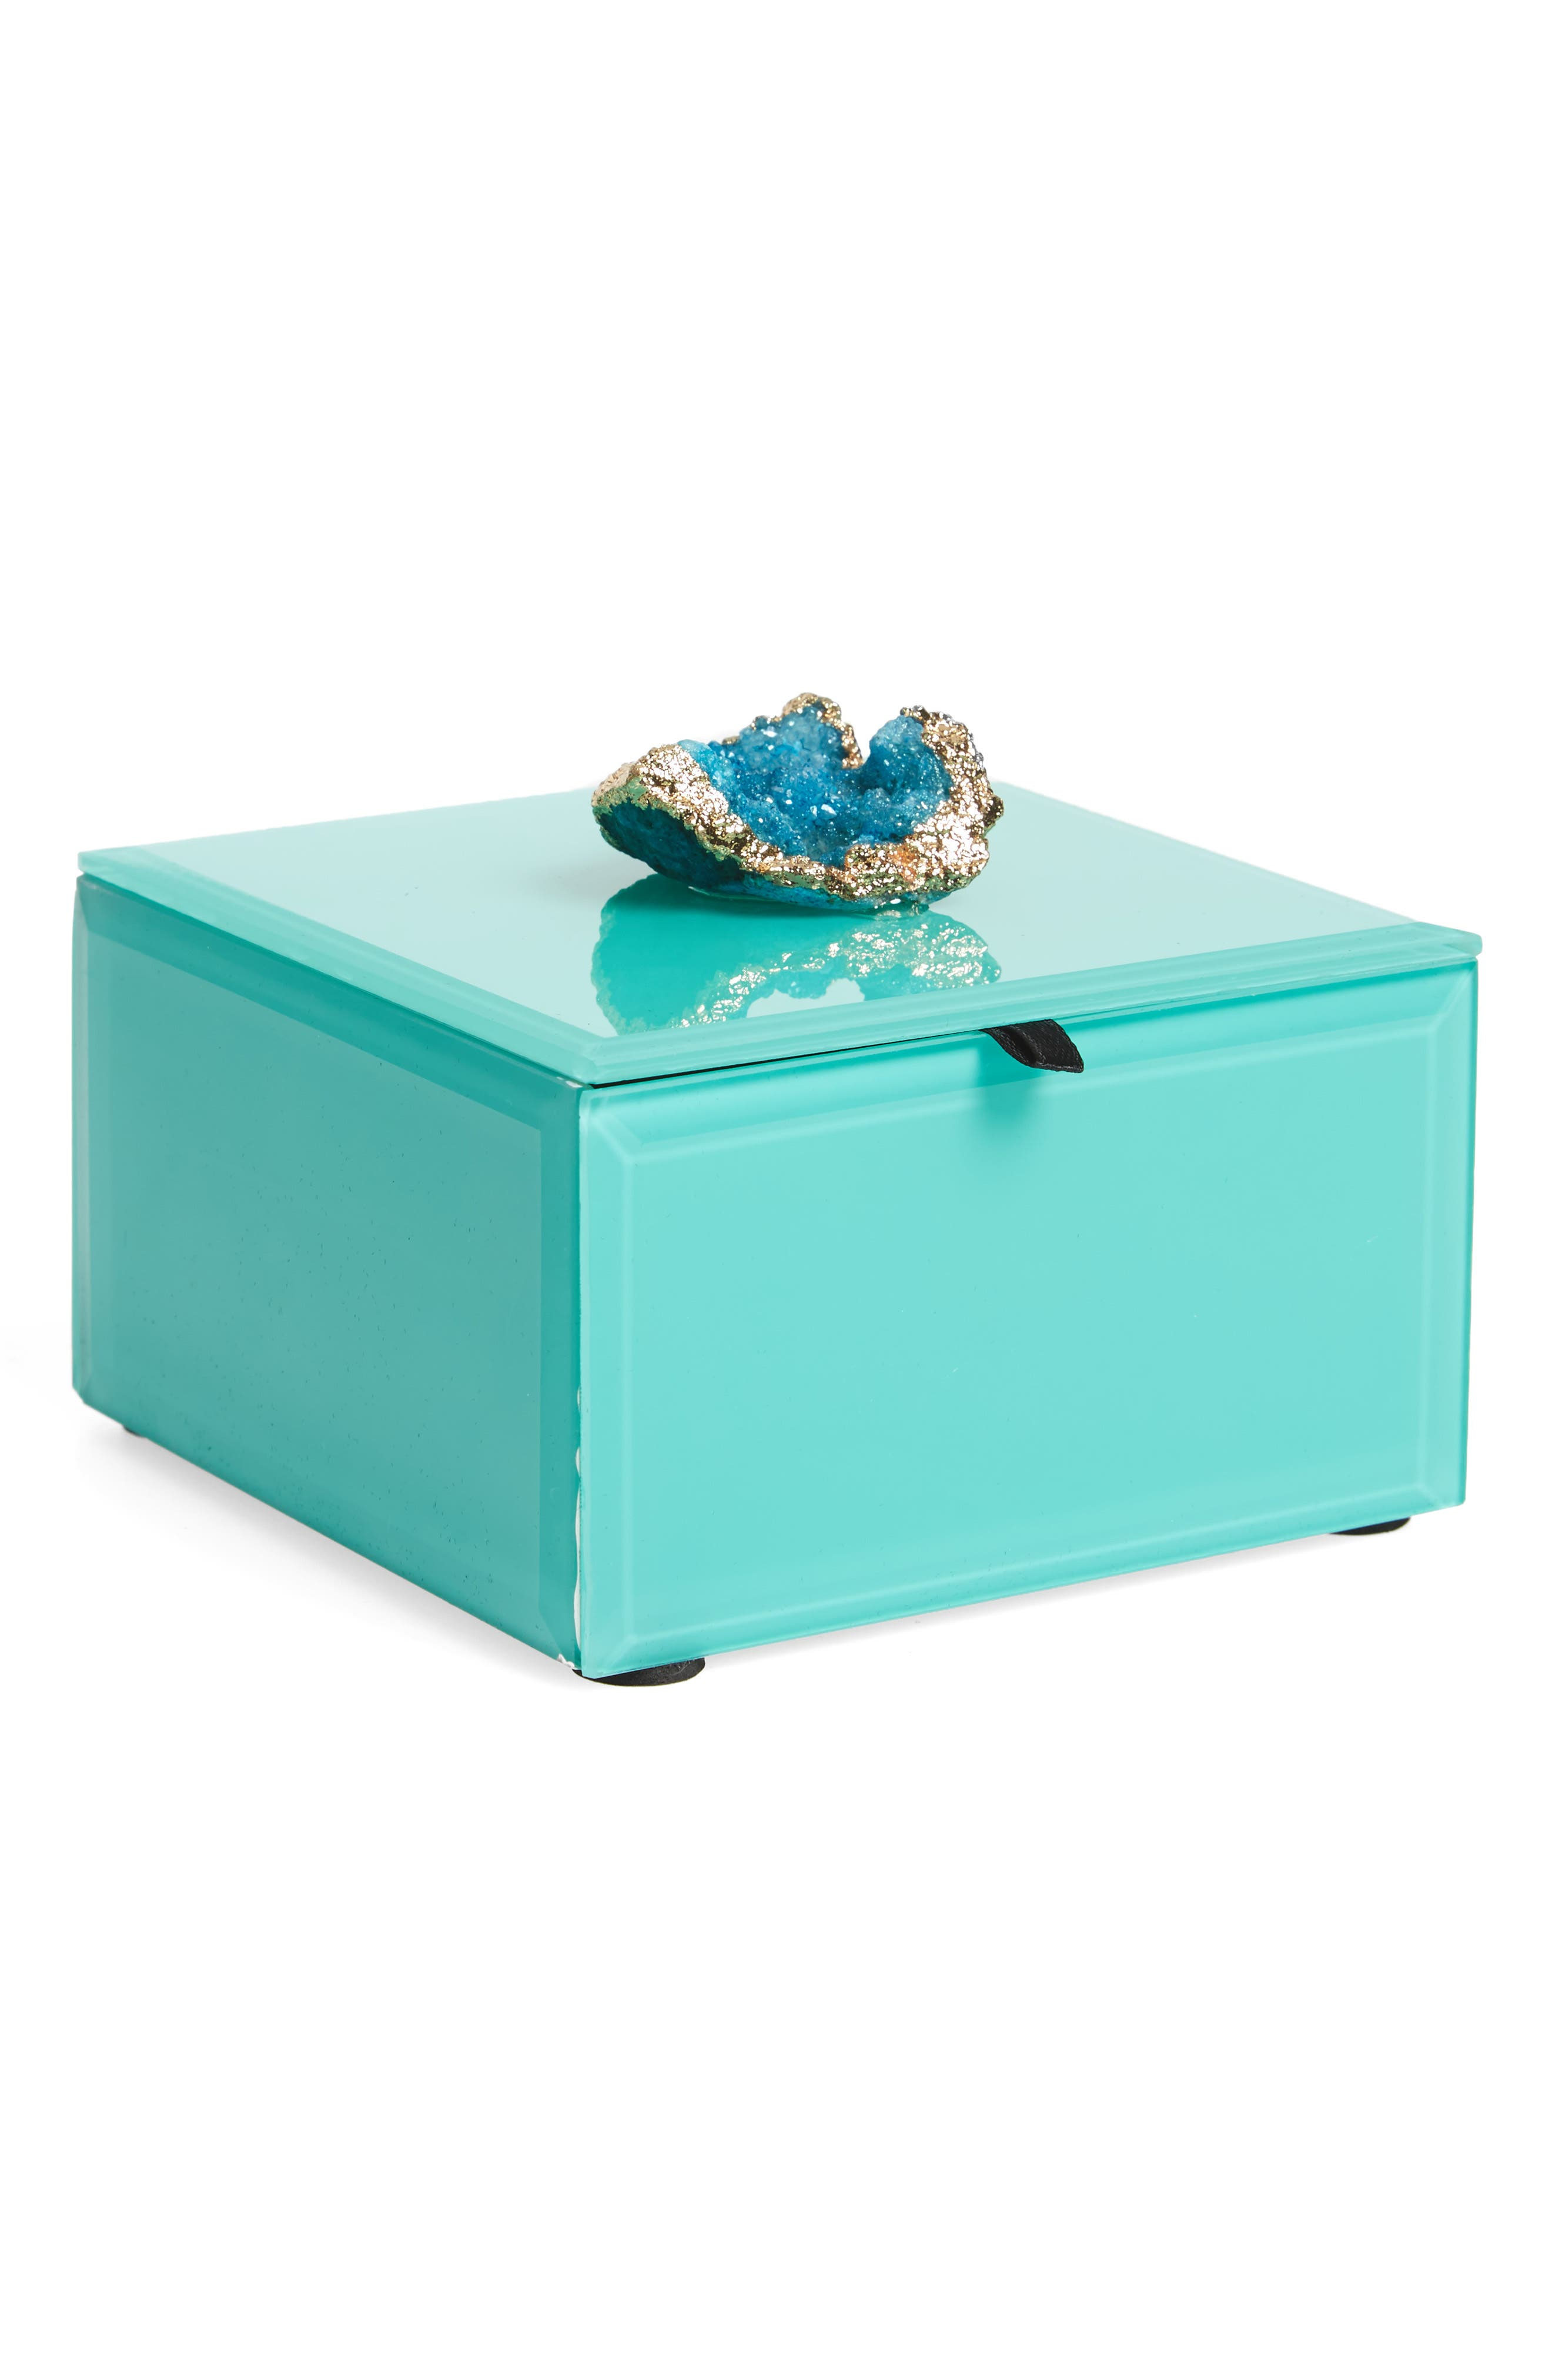 Alternate Image 1 Selected - American Atelier Peacock Agate Jewelry Box